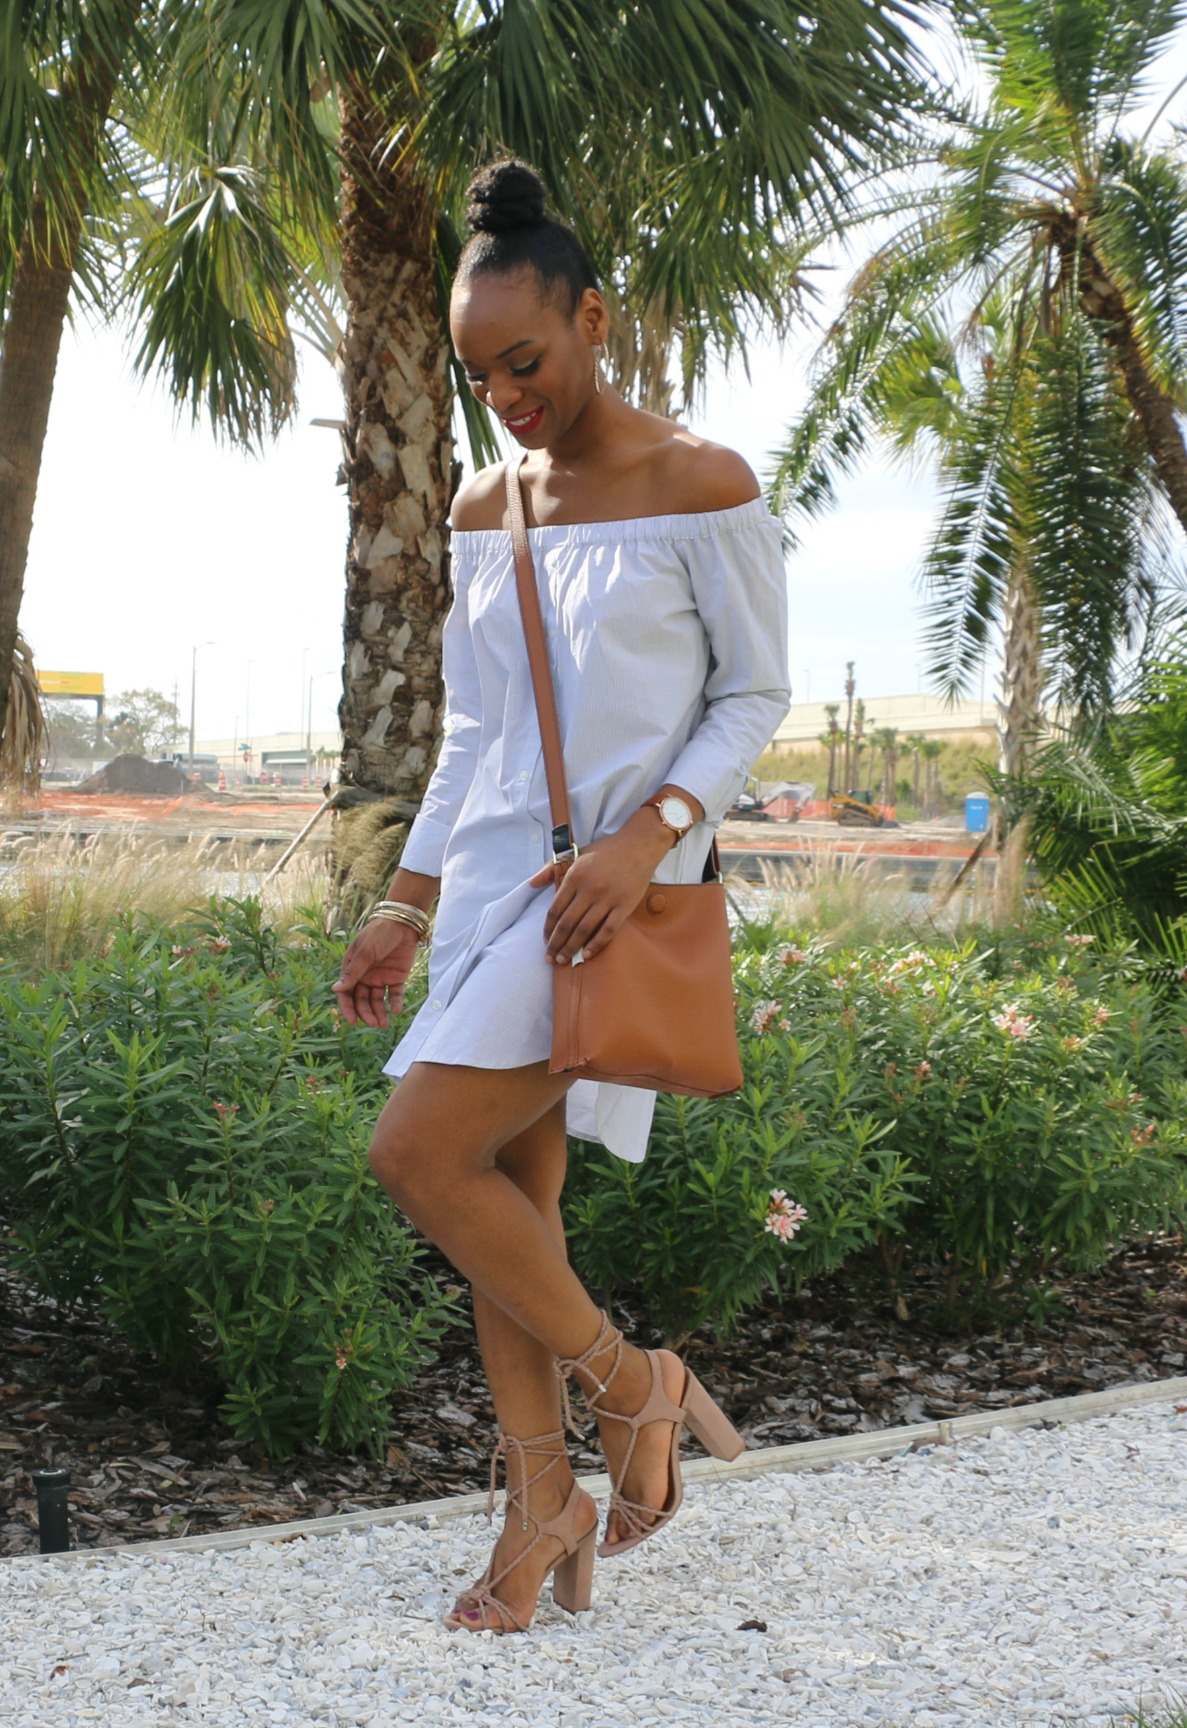 fashion-mimi-chica-fashion-dress-tj-maxx-steve-madden-sandals-beige-heels-rosetti-crossbody-reversible-bag-ootd-spring-fashion-original-grain-watch-beauty-and-the-beat-blog